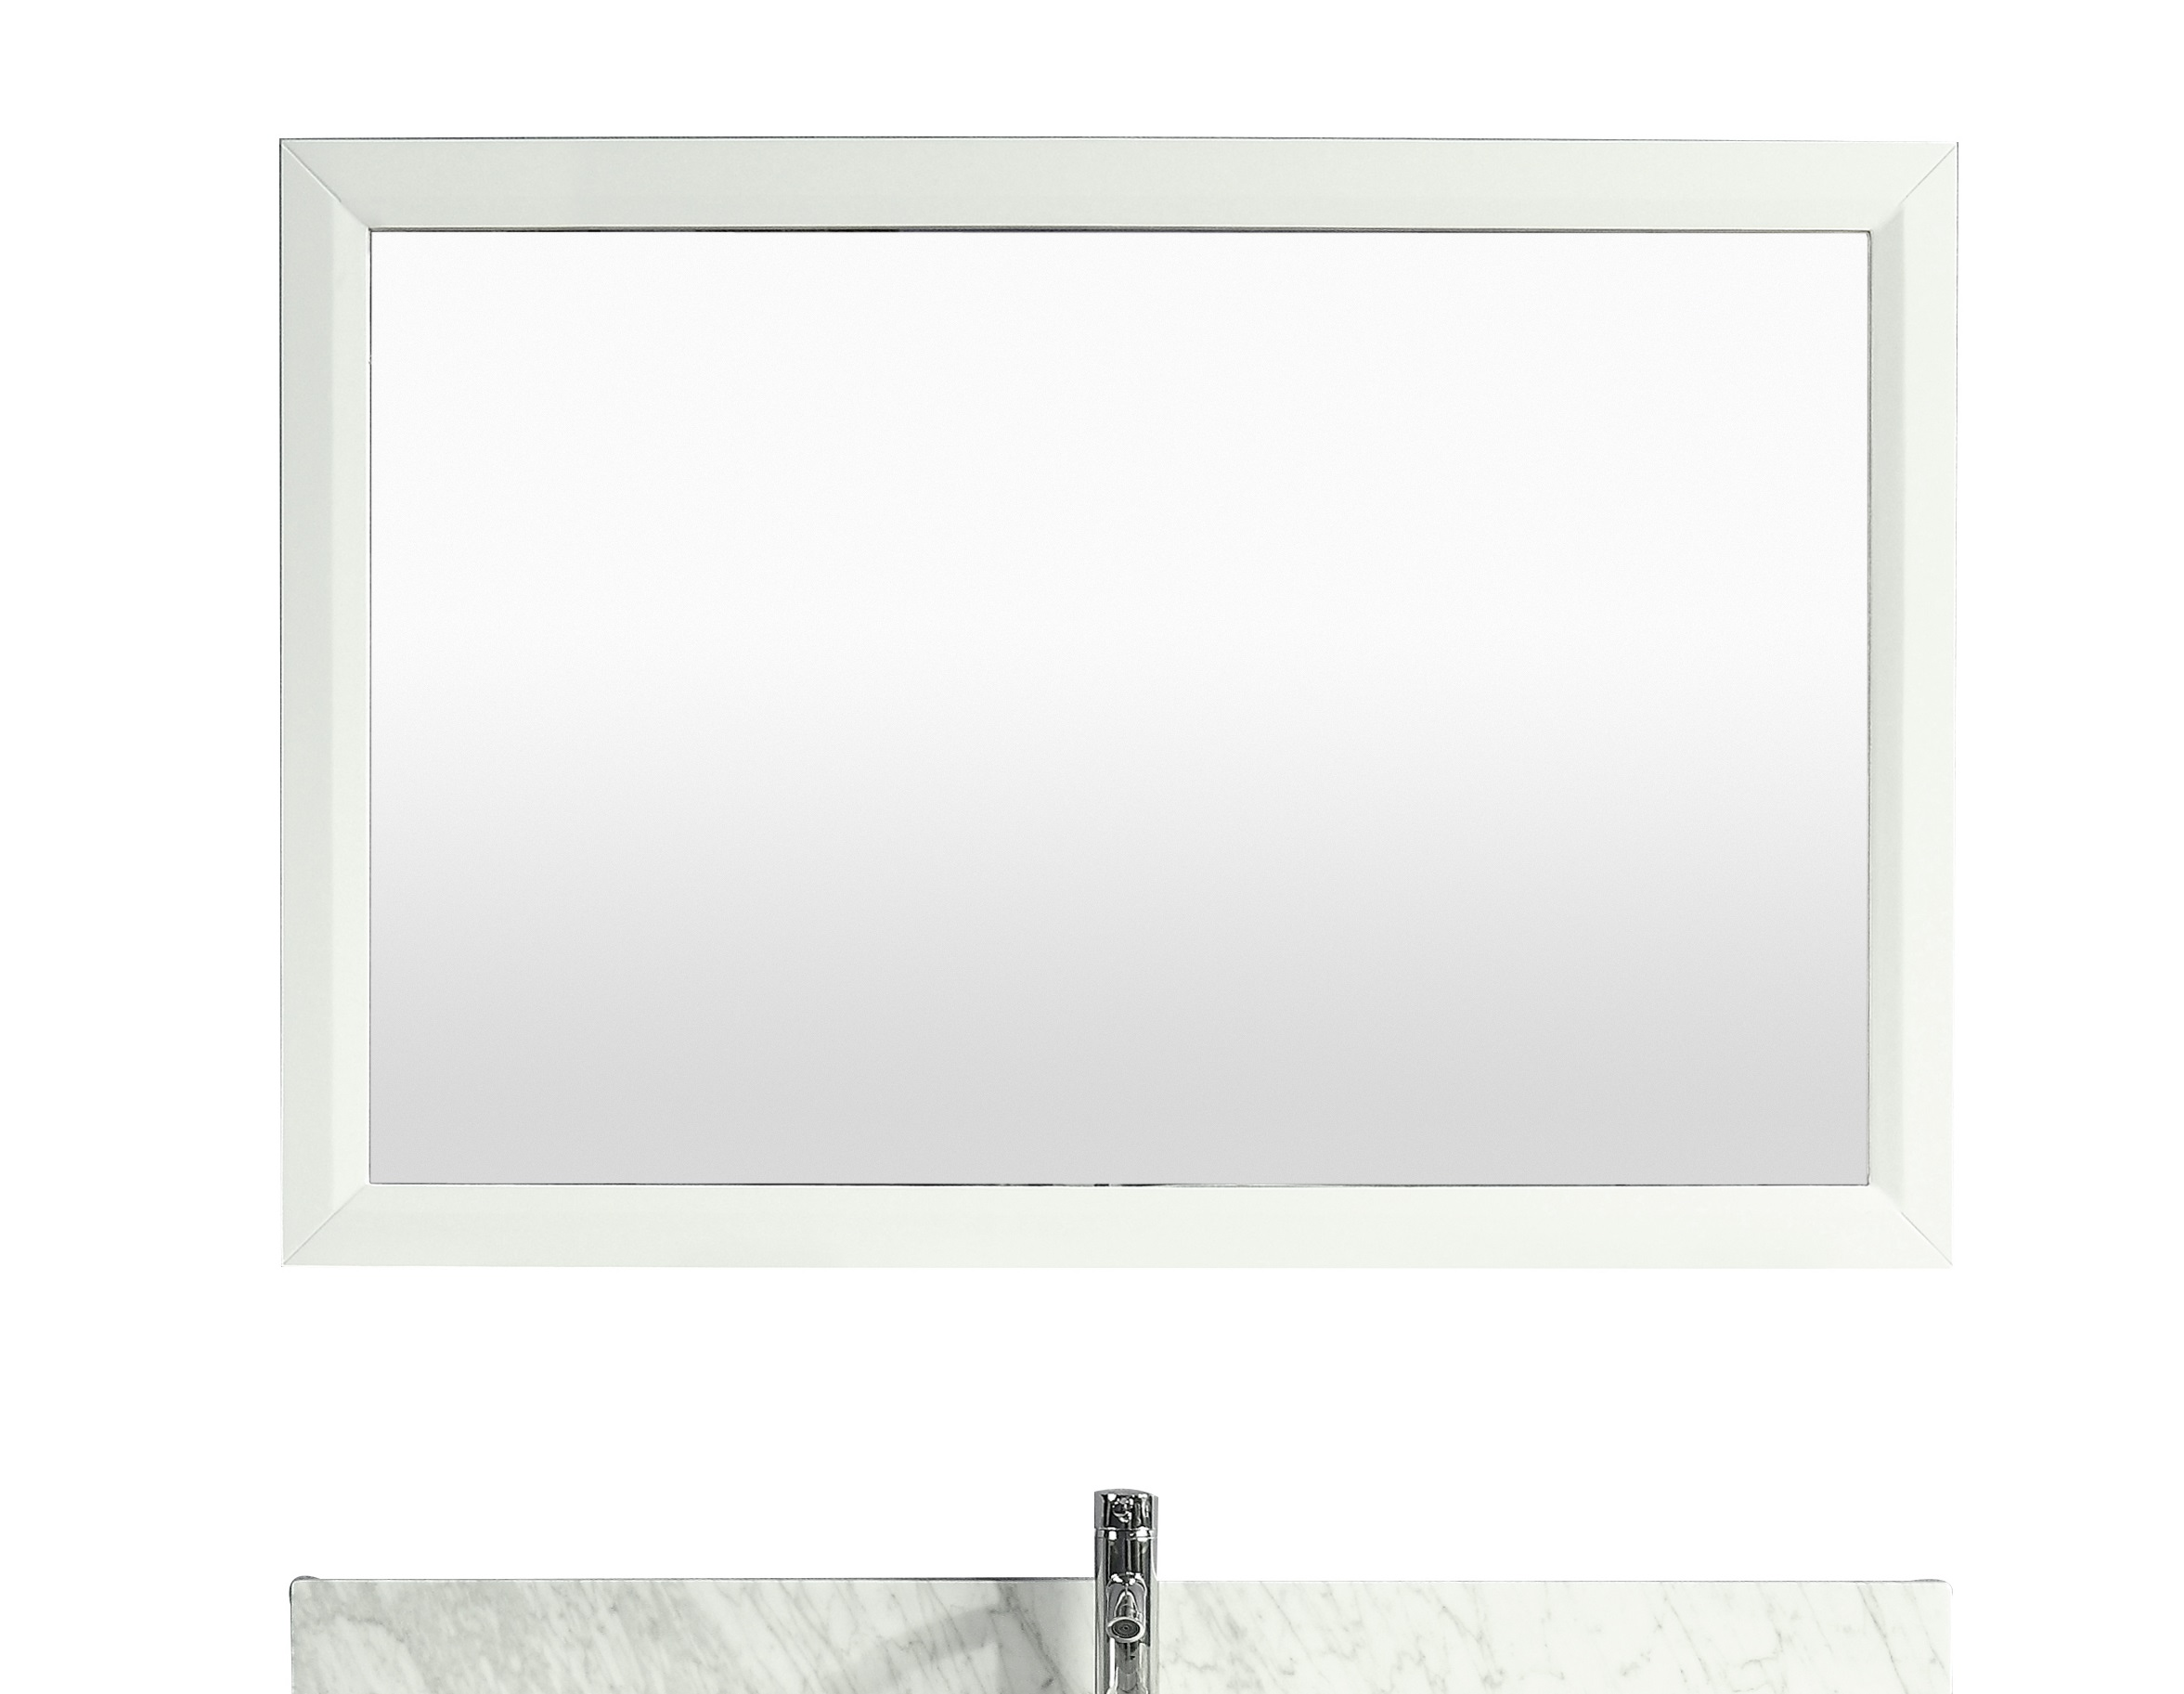 Eviva aberdeen 48 white framed bathroom wall mirror for White framed mirror